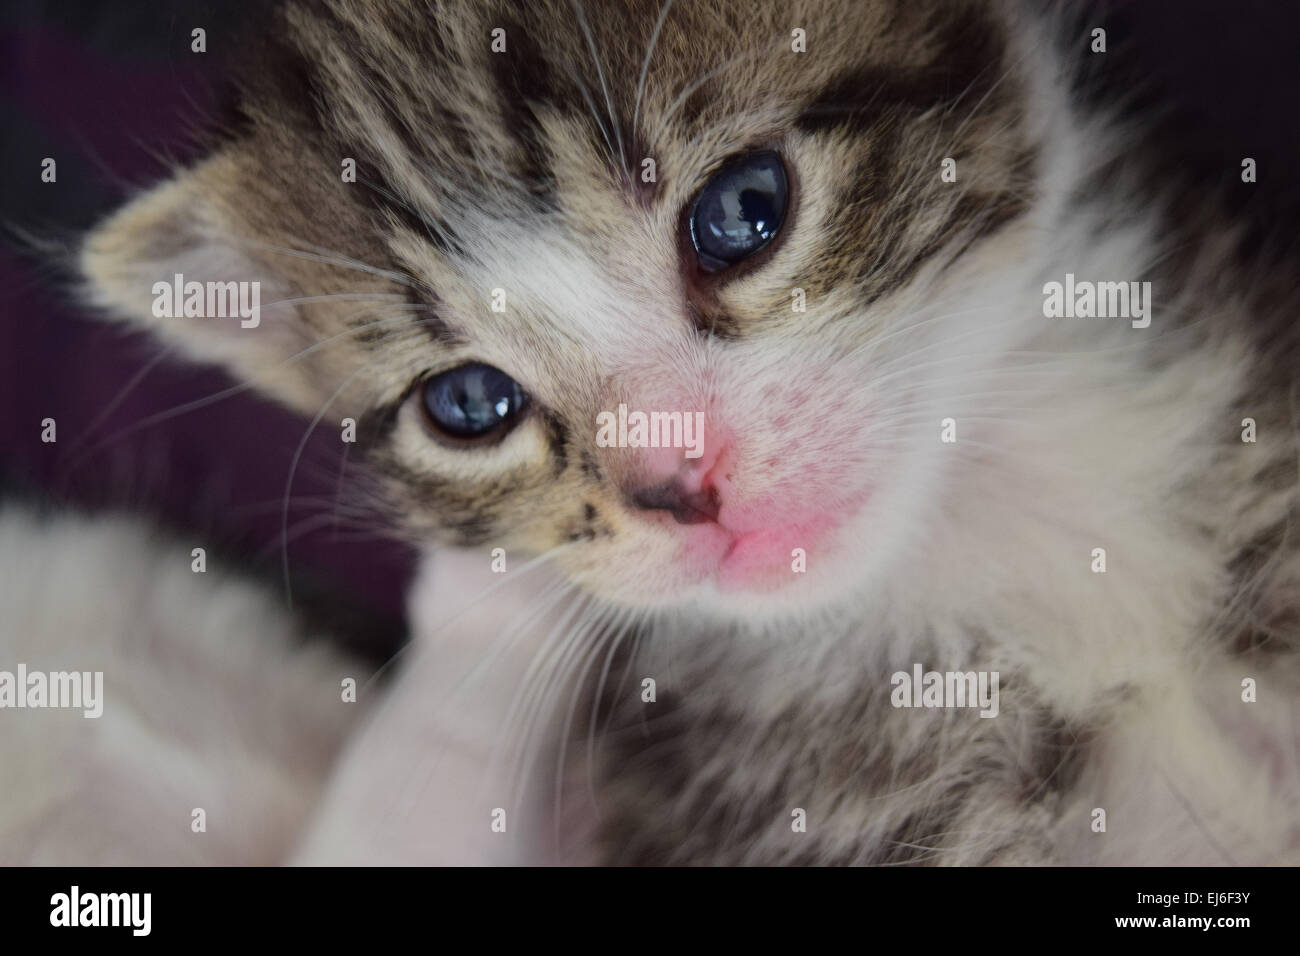 A baby kitten at 3 weeks old Stock Royalty Free Image